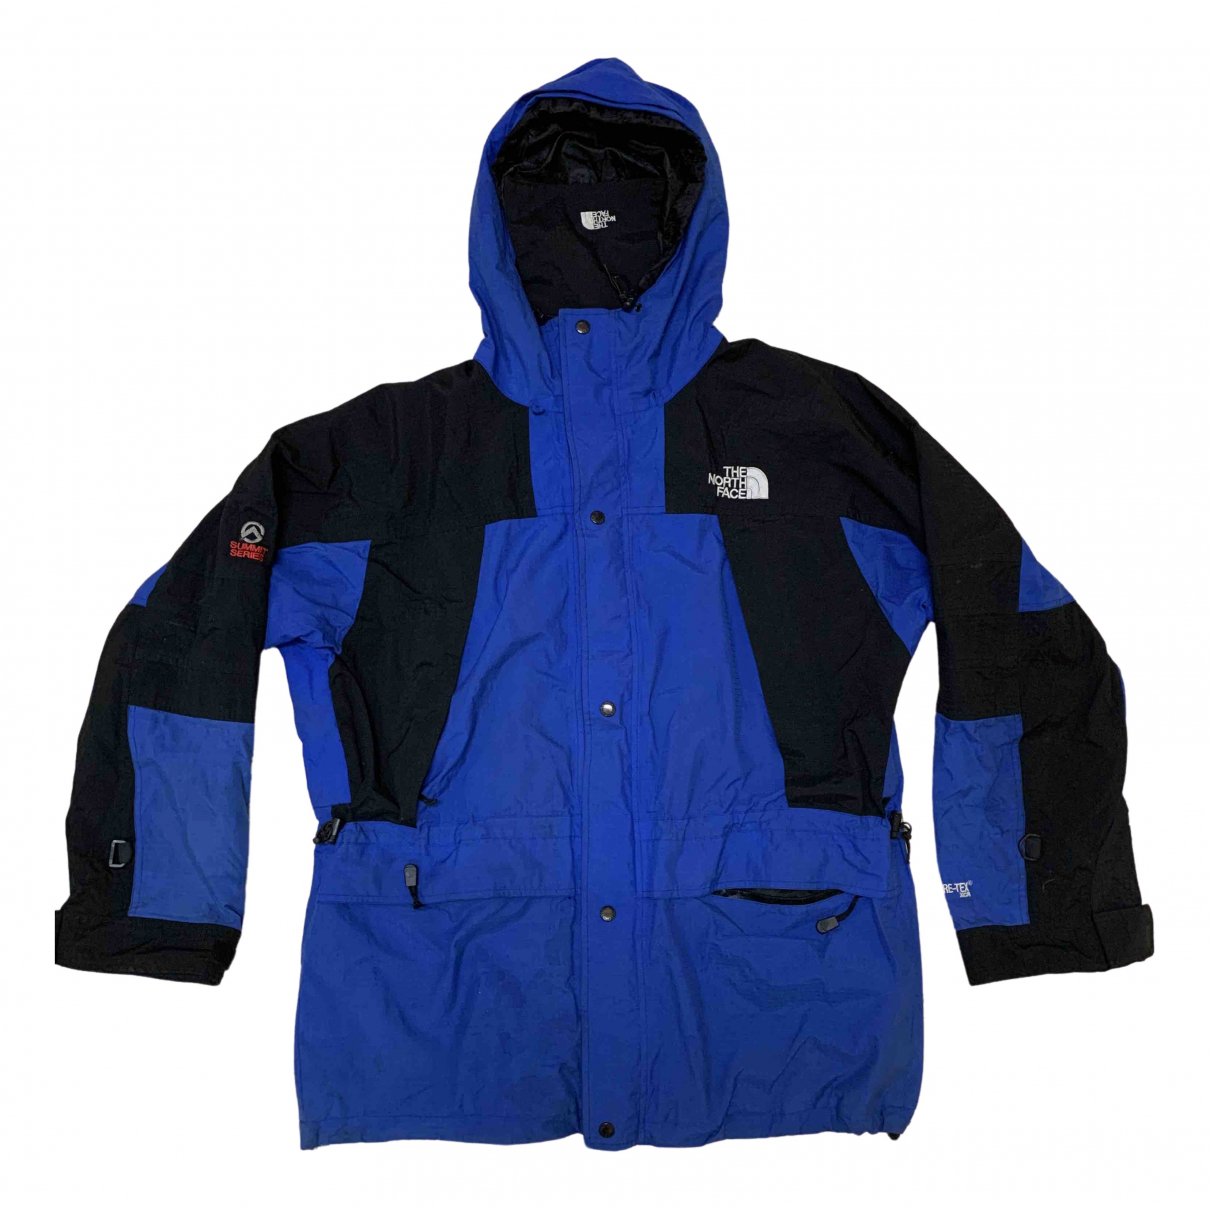 The North Face \N Blue jacket  for Men L International